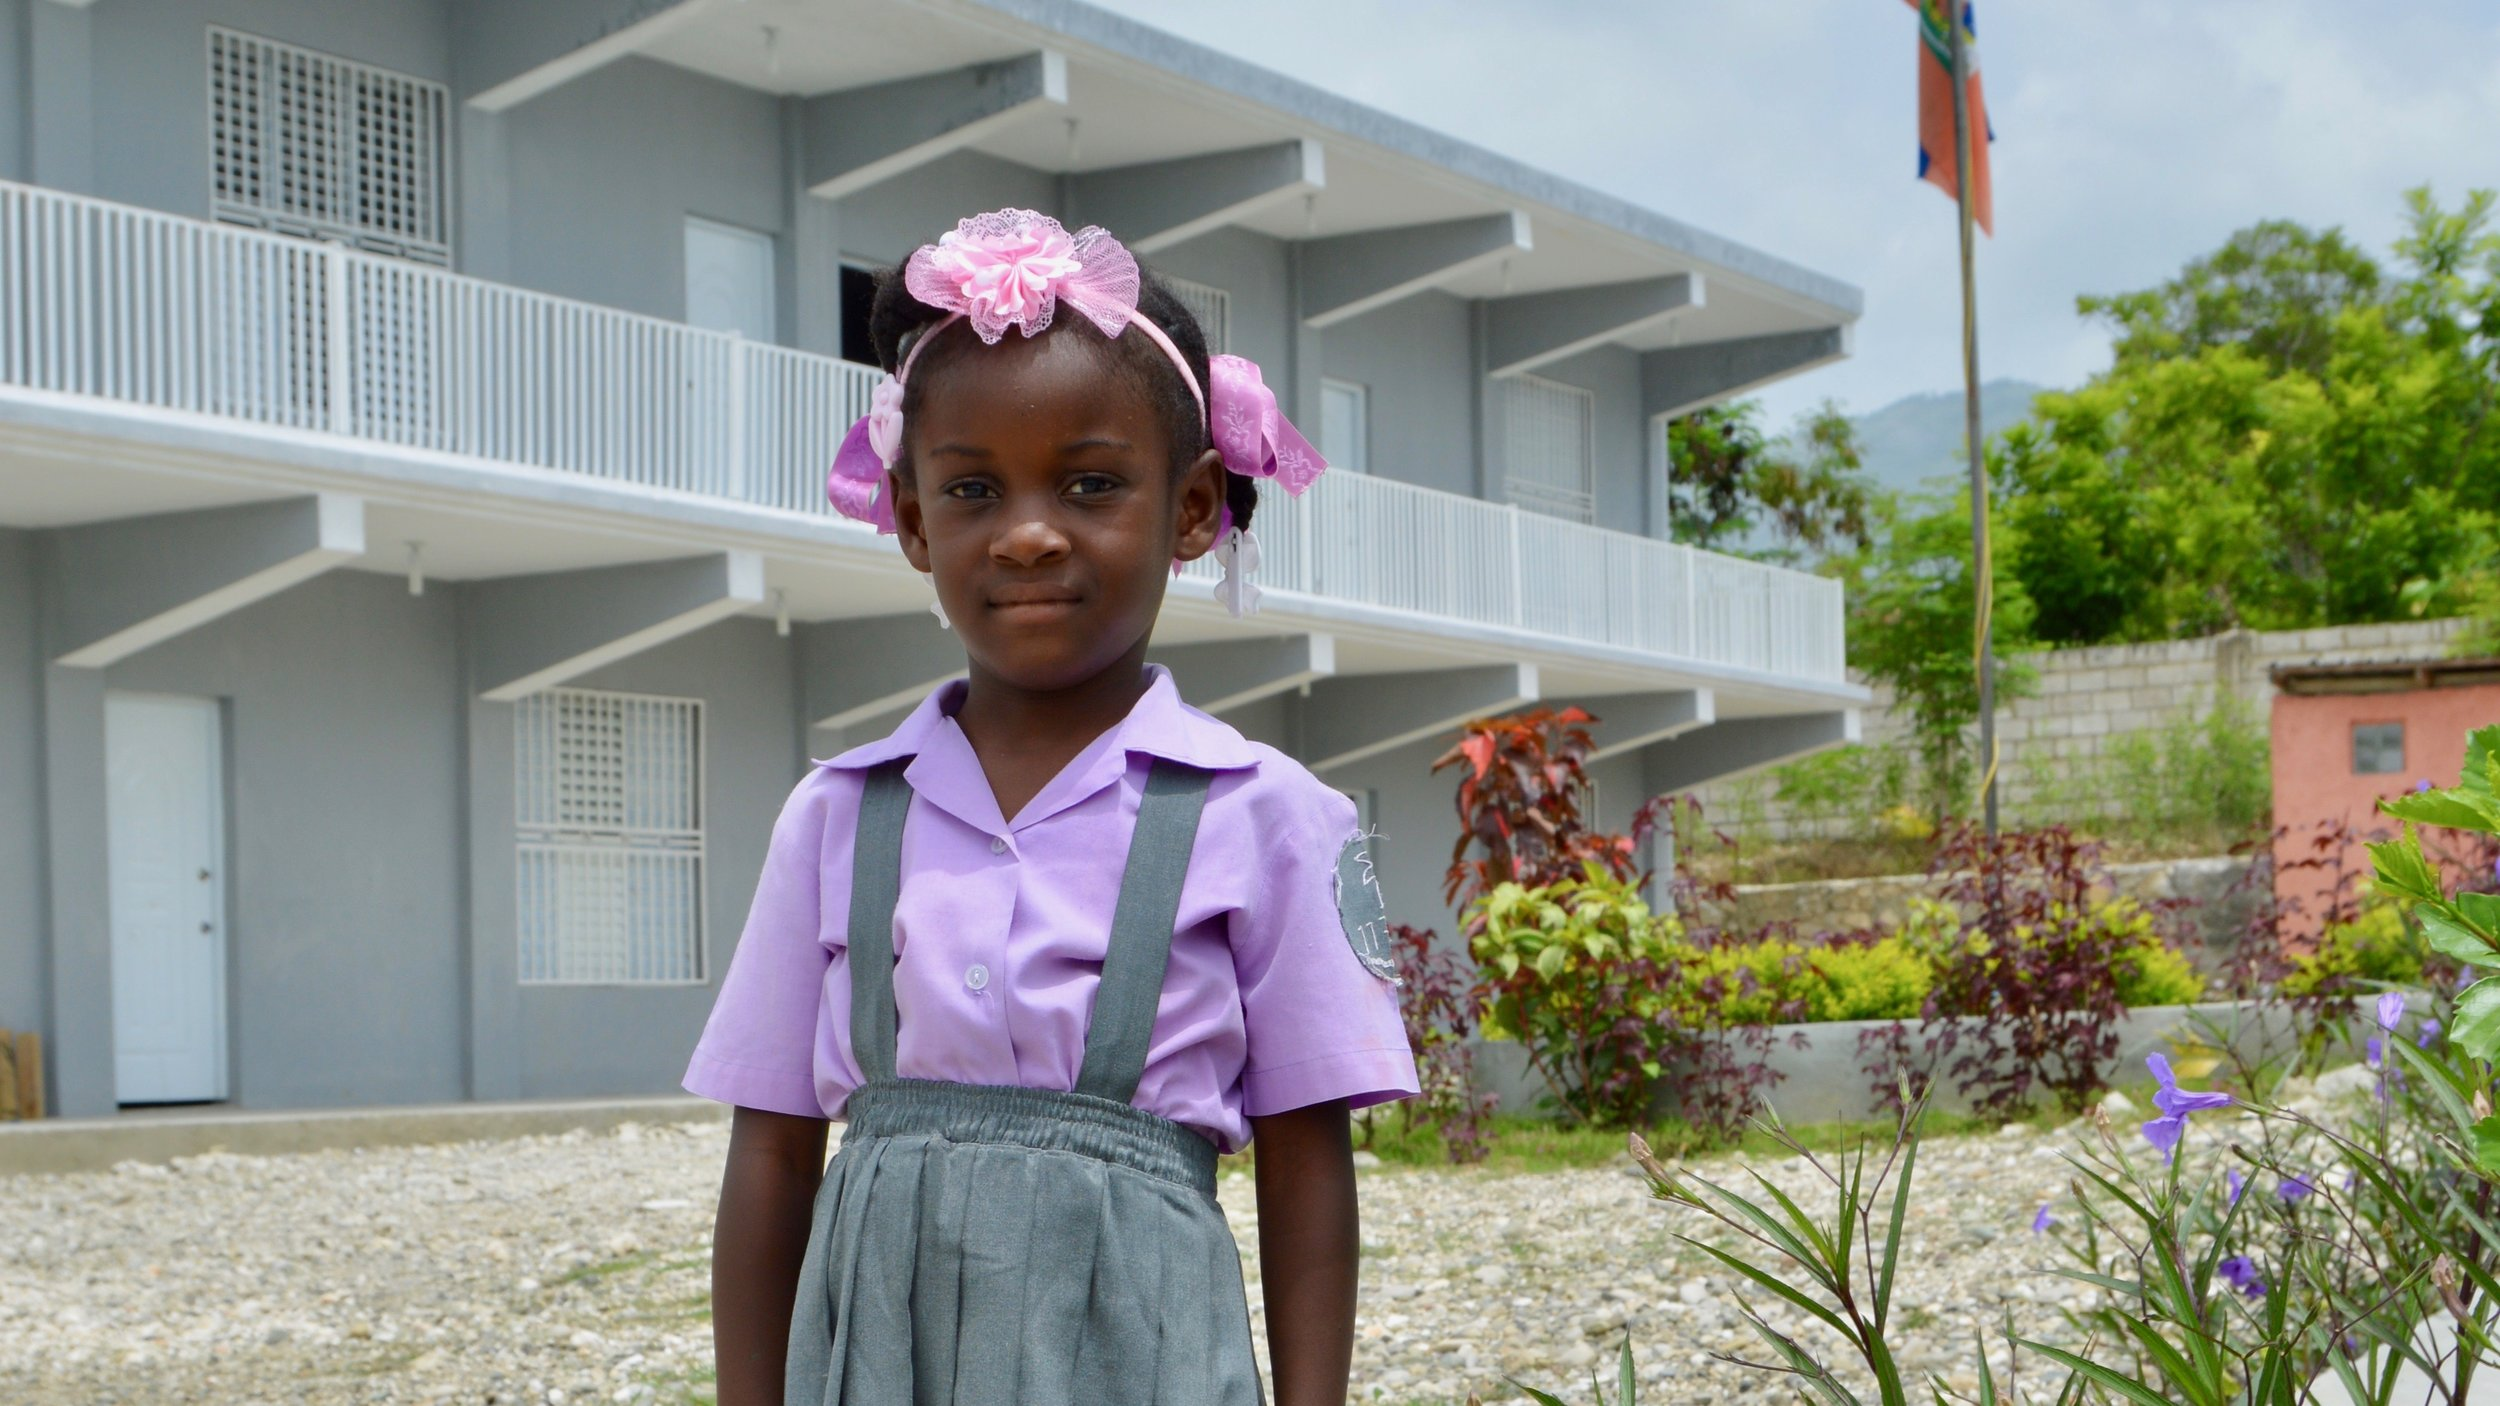 Haiti - We're serving 240 students and operating two campuses.